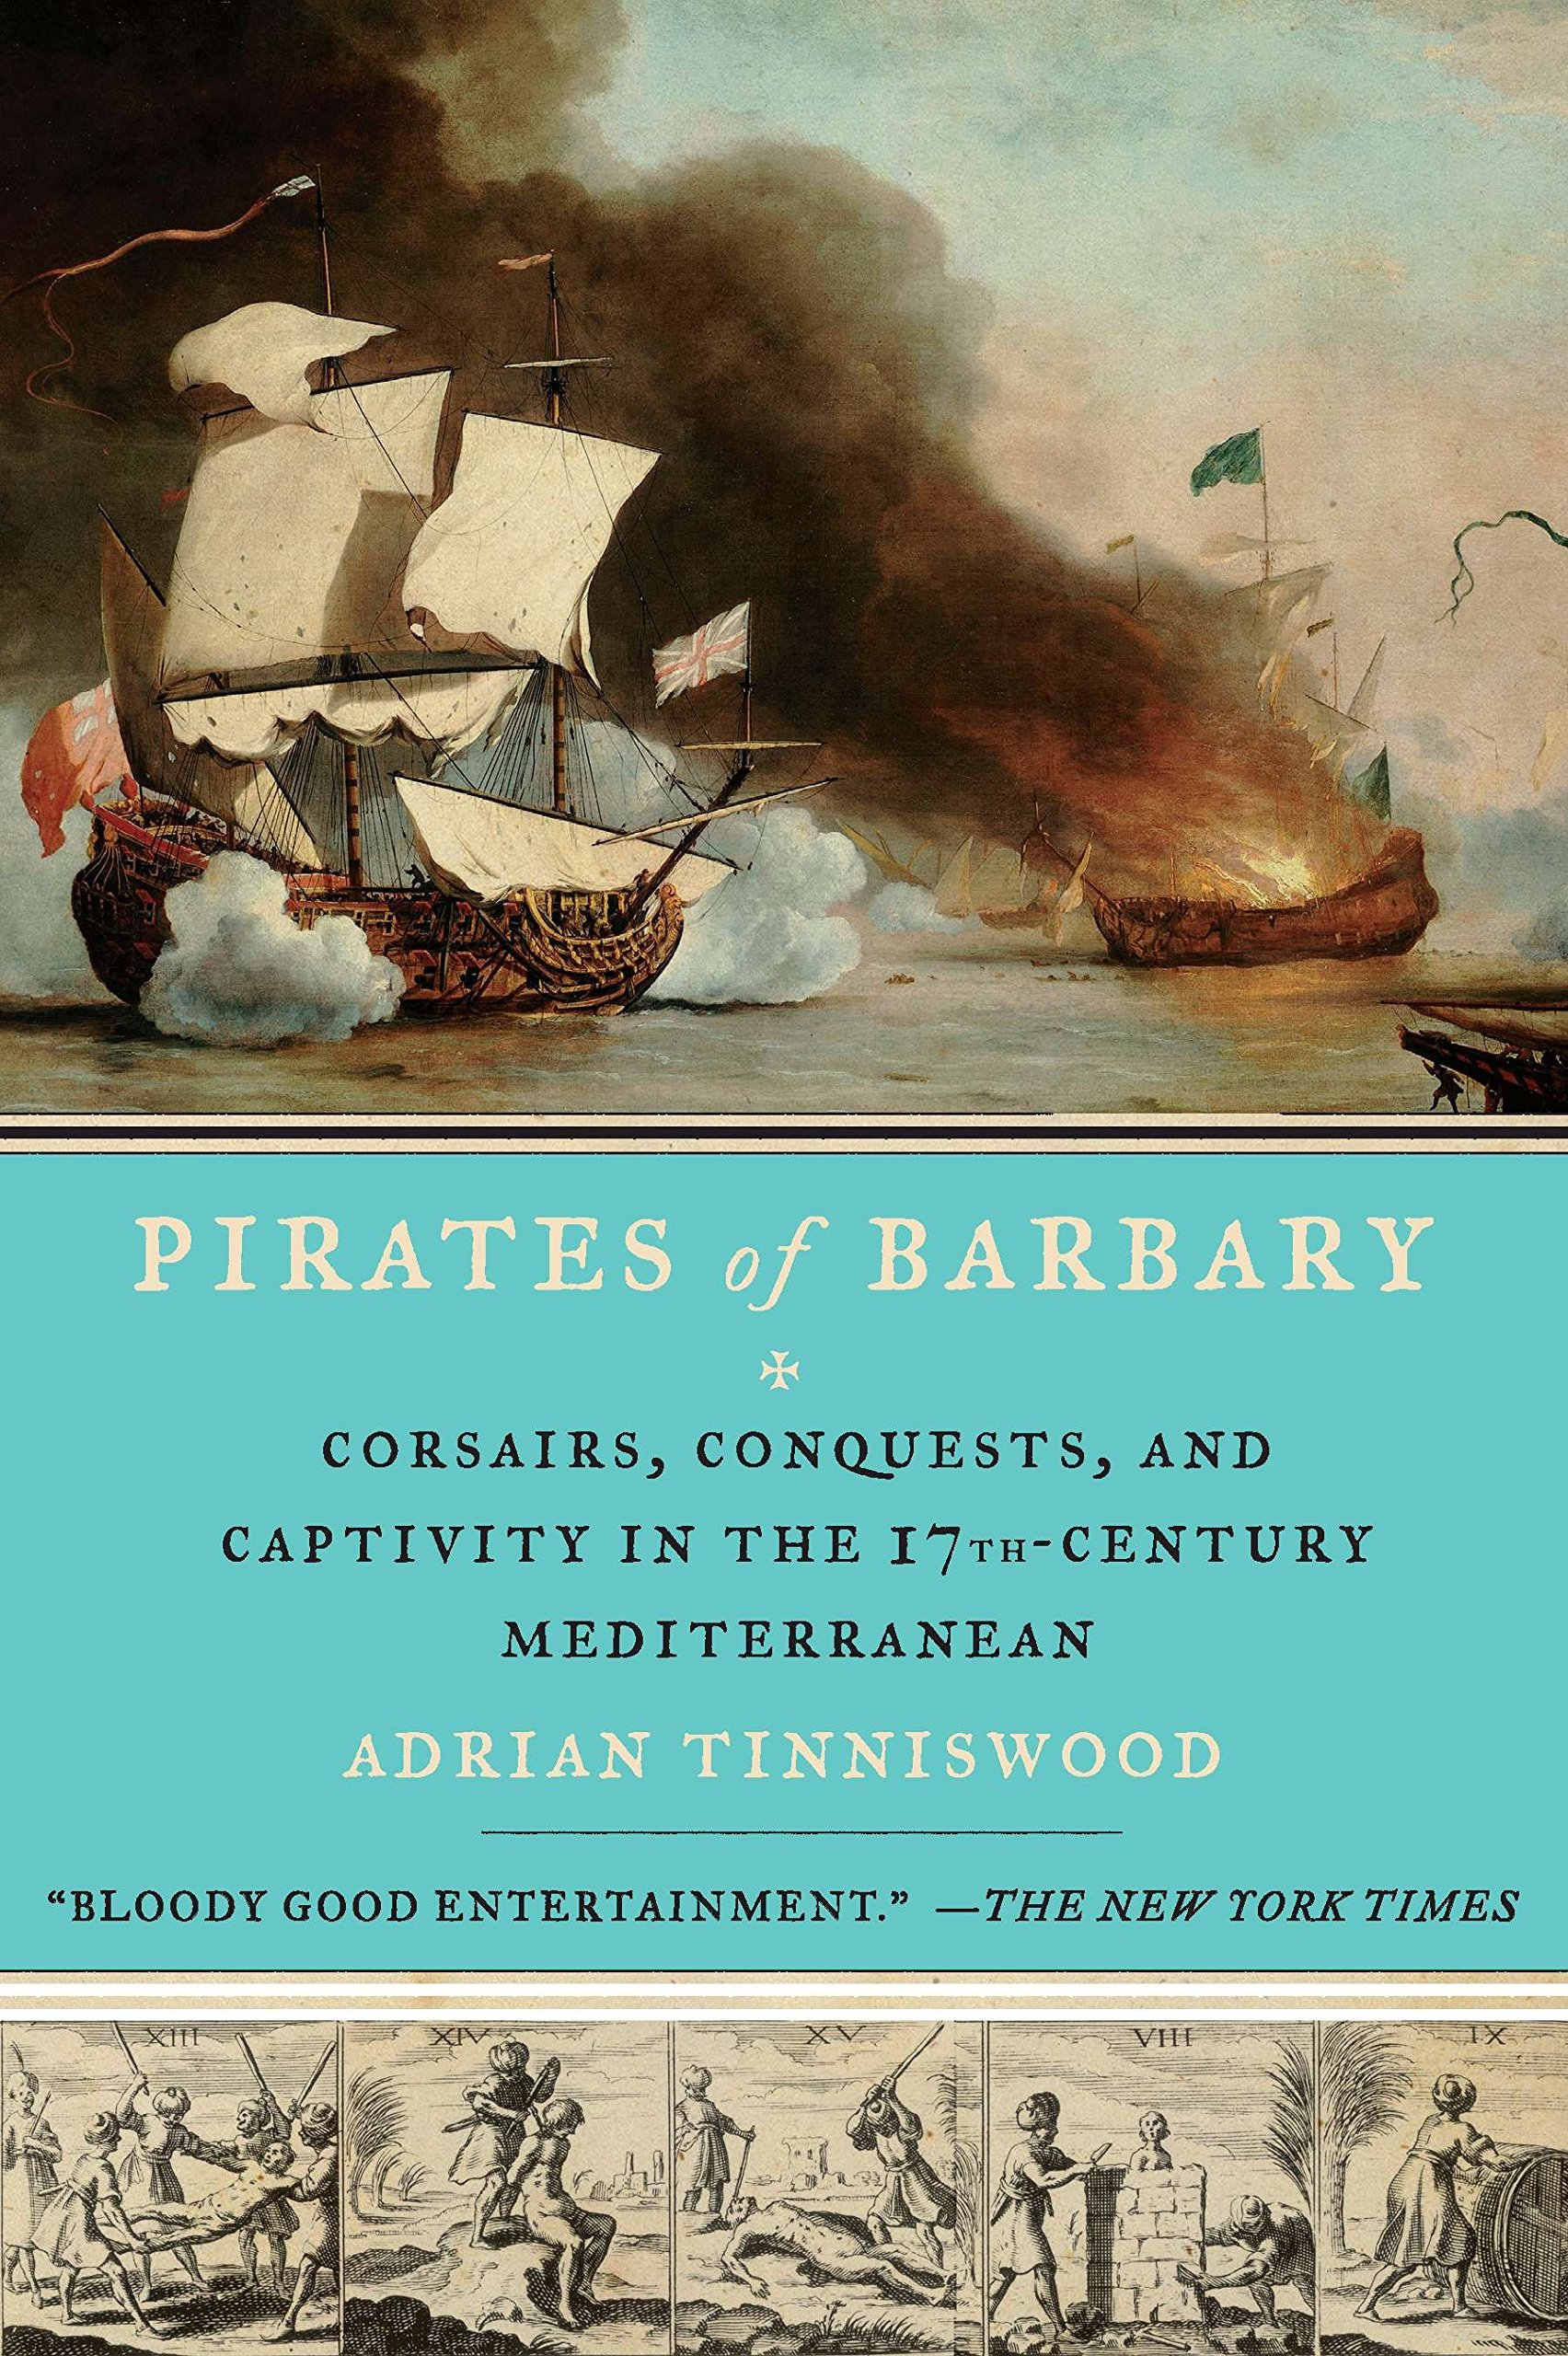 Pirates of Barbary: Corsairs, Conquests and Captivity in the